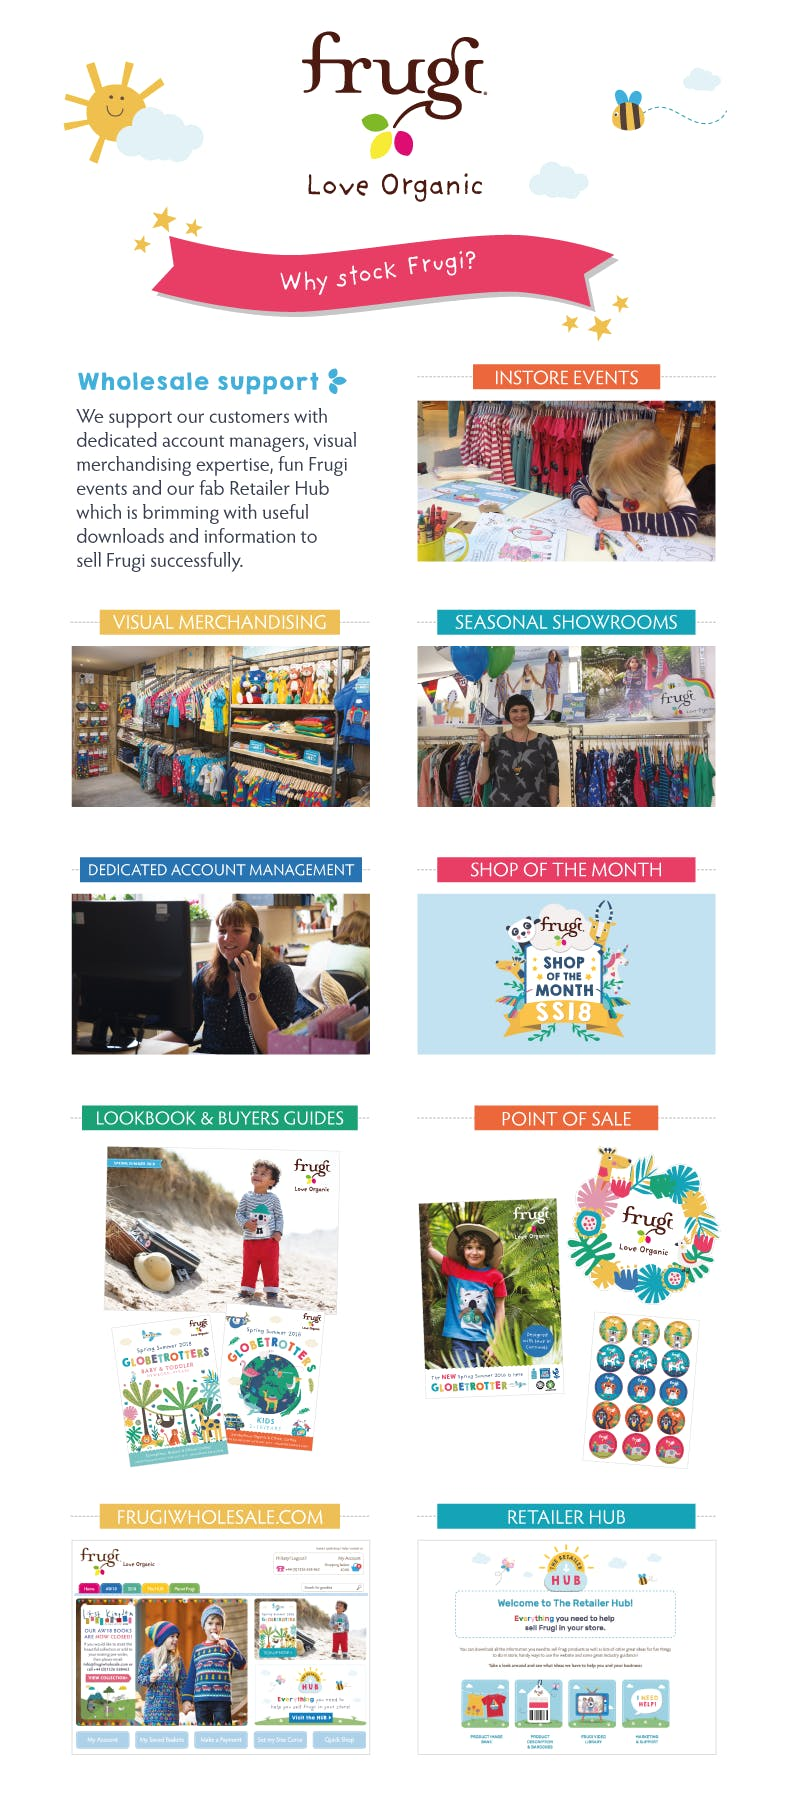 Why stock Frugi